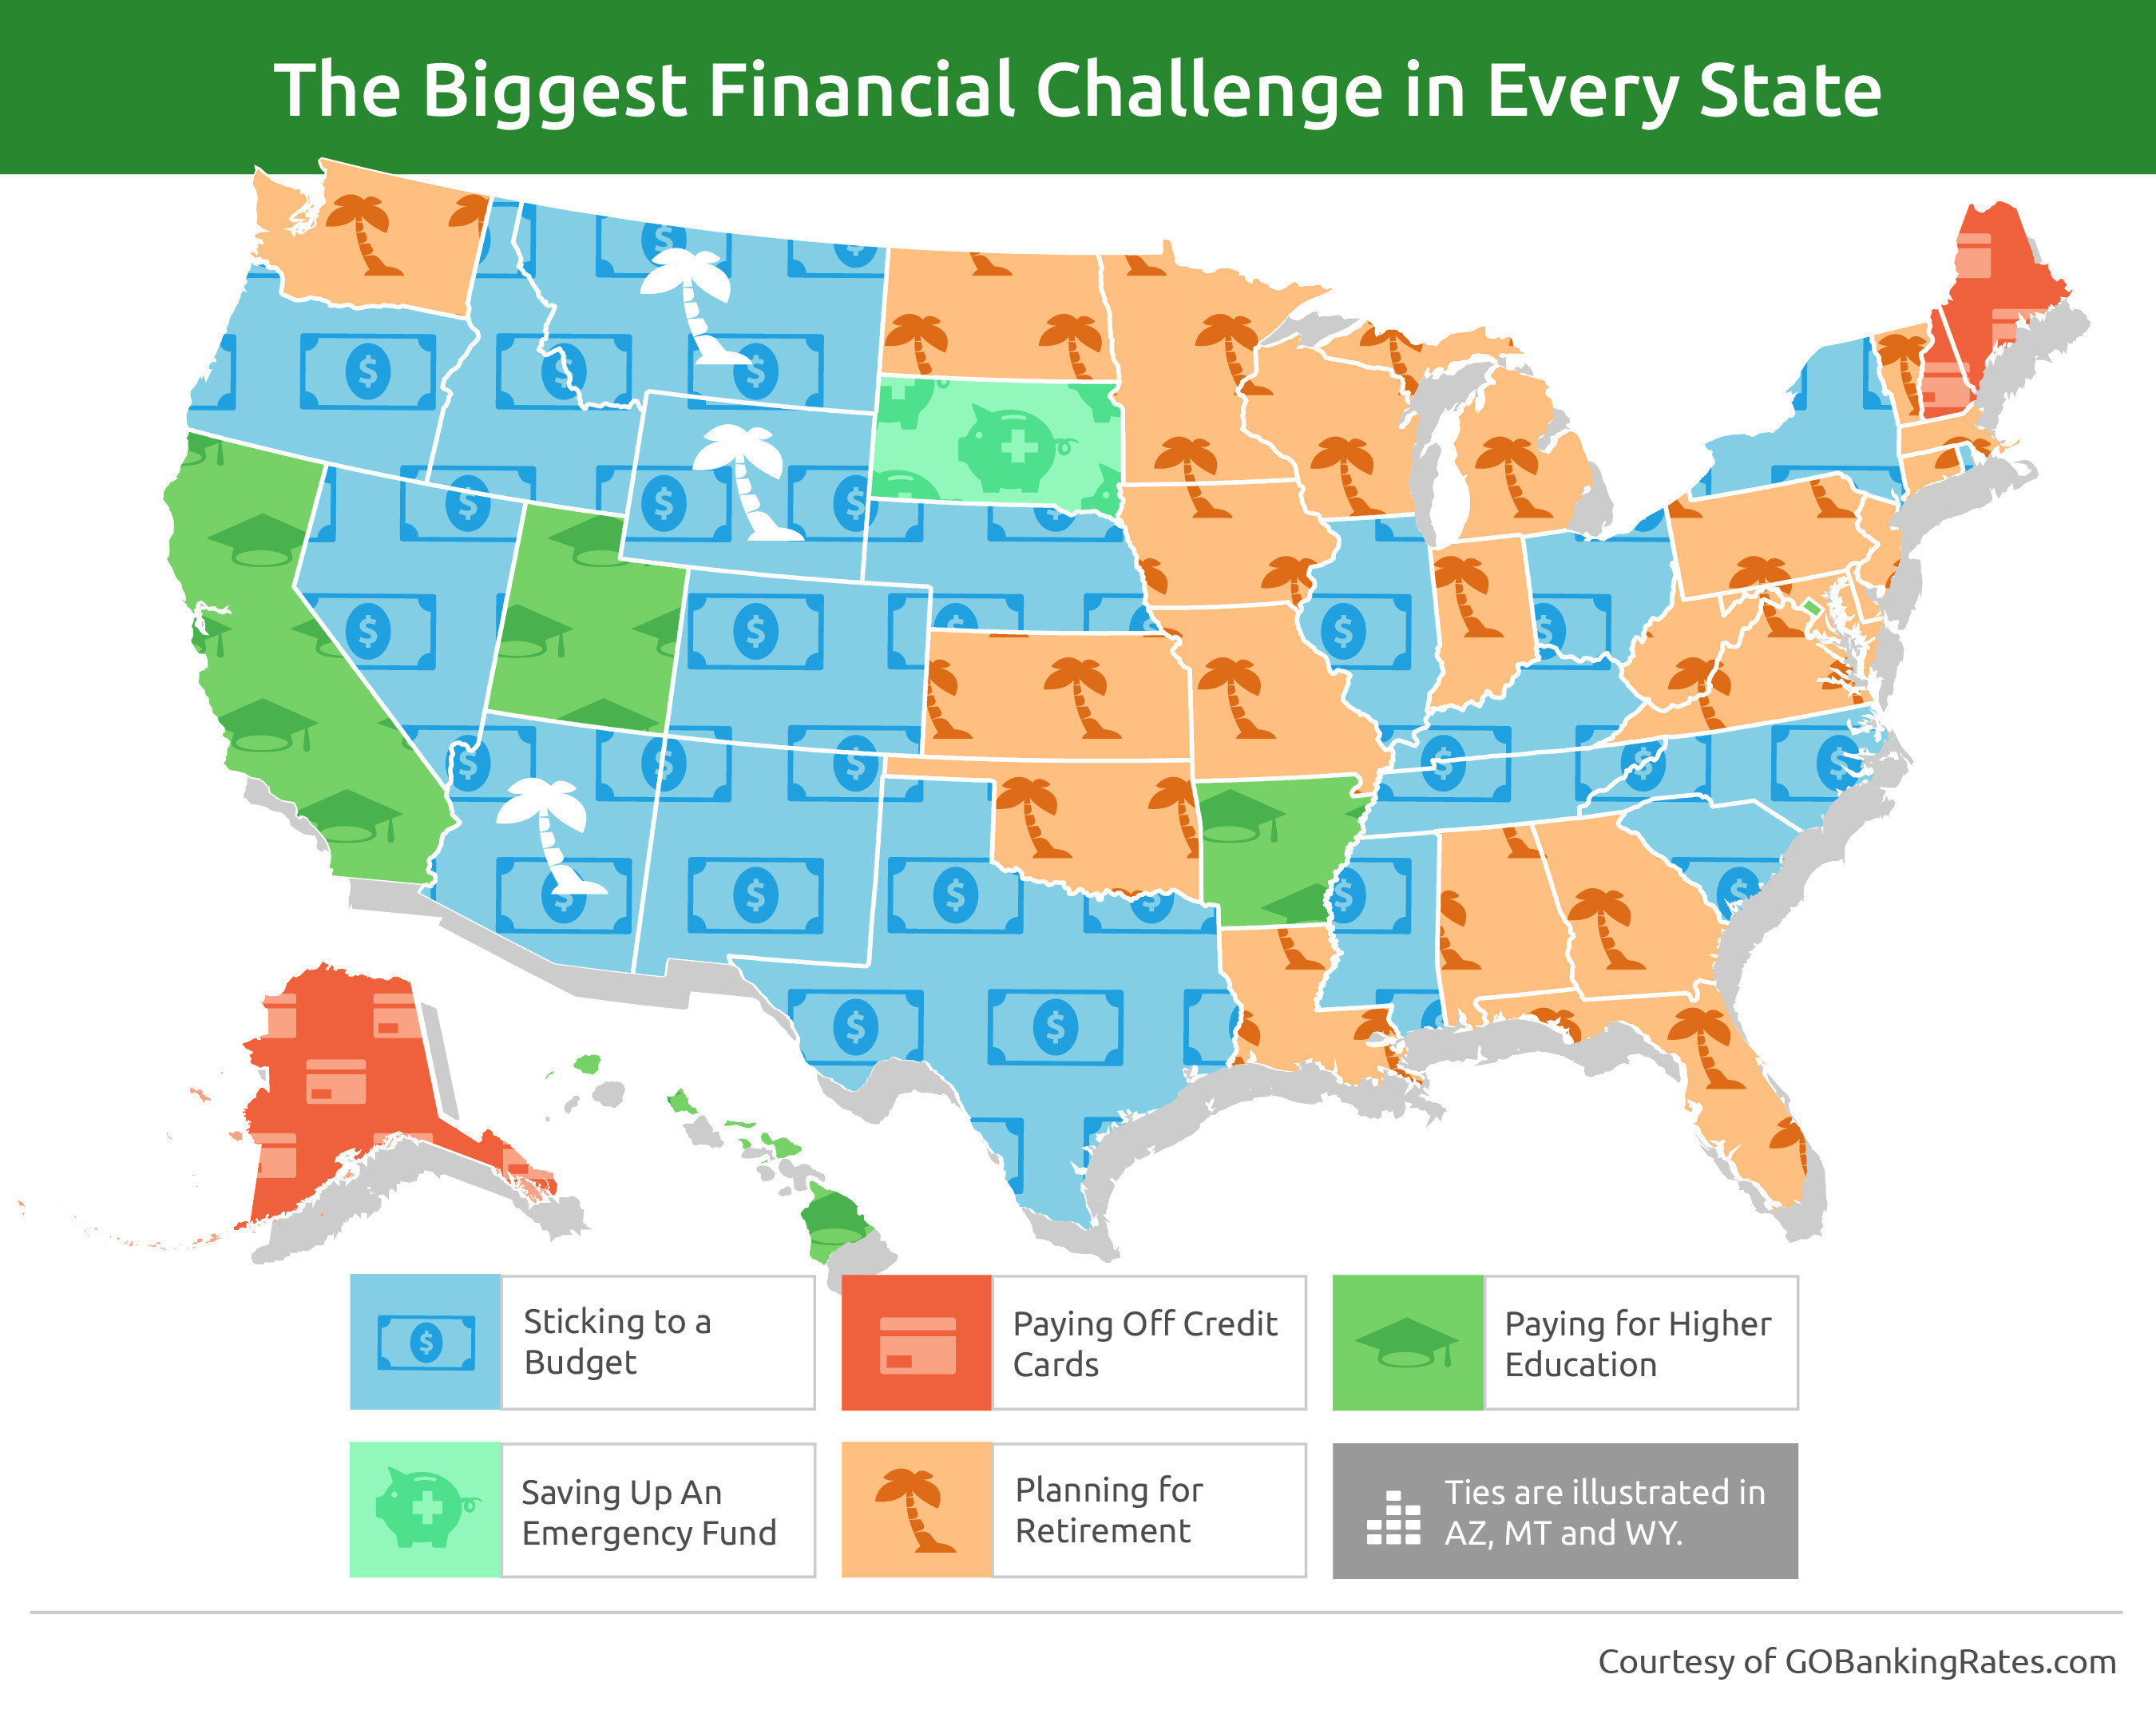 GOBankingRates' Map Showcases Biggest Financial Challenge in Each State